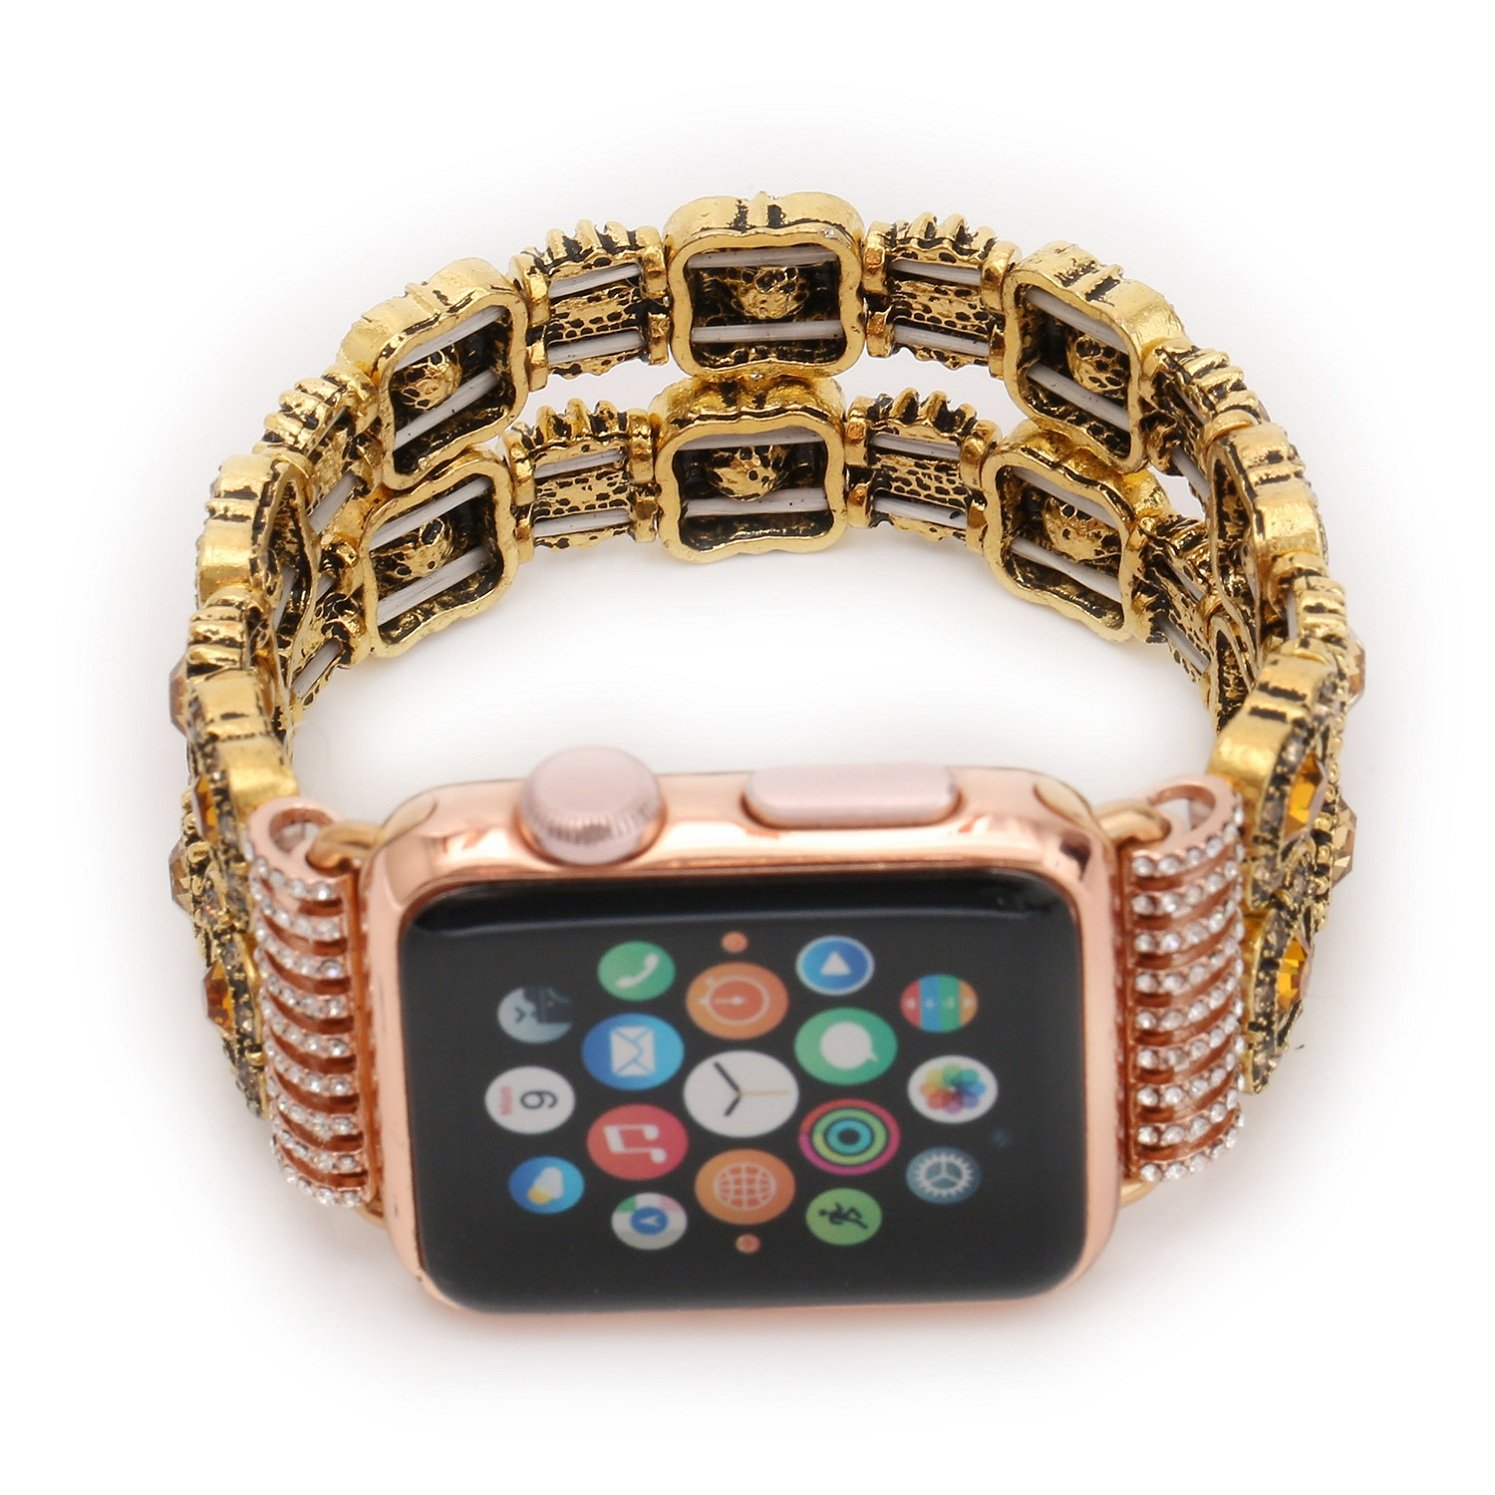 Juzzhou Band For Apple Watch iWatch Series 1/2/3 Sport Edition Style Elastic Stretch Woman Girl Bracelet Replacement Faux Pearl Jewels Wrist Strap Wriststrap With Stainless Steel Adapter Pink 38mm by Juzzhou (Image #2)